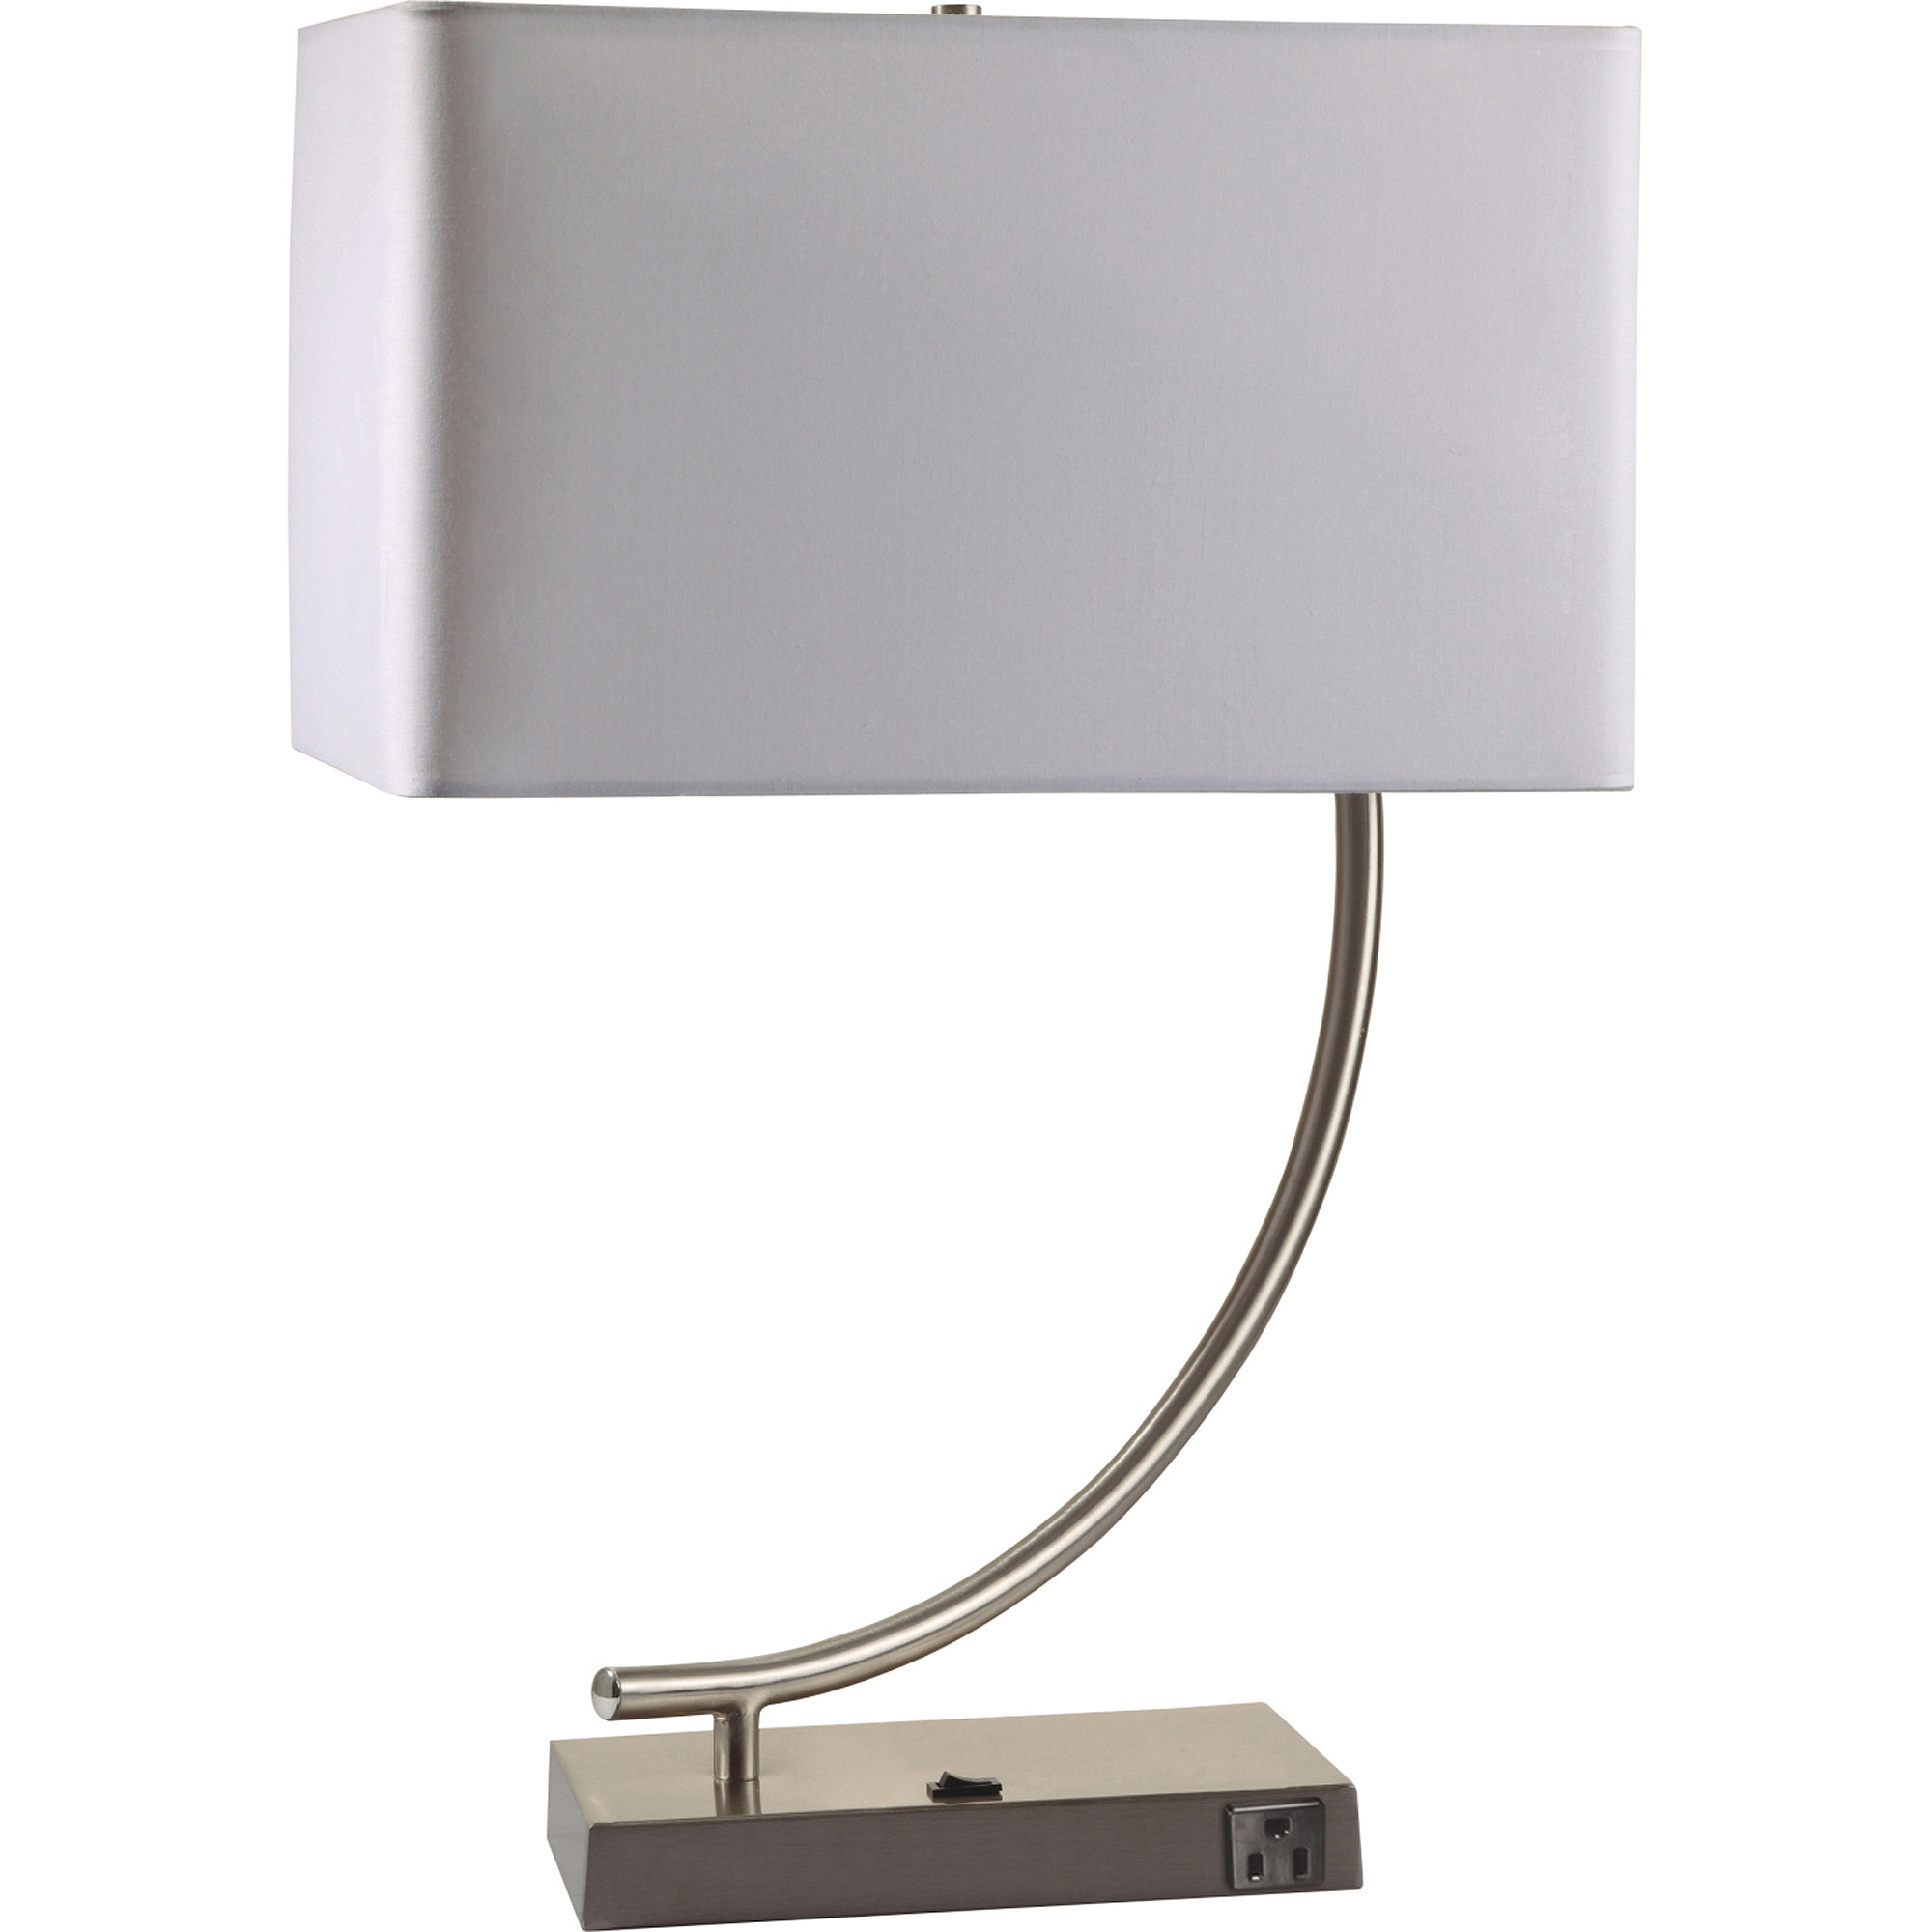 Awesome Contemporary Table Lamp With Convenient Outlet   Walmart.com